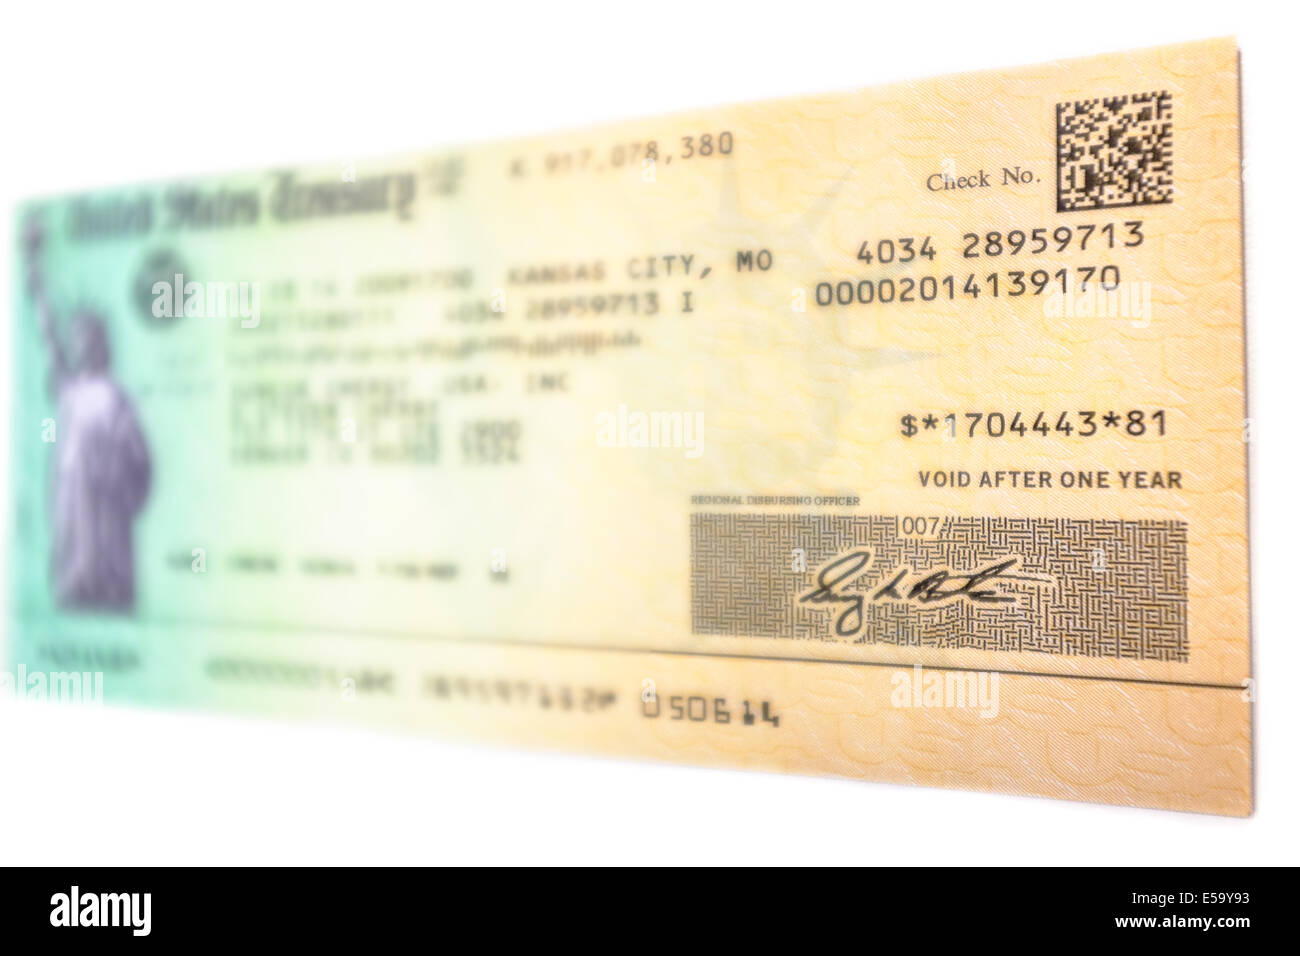 A Tax Refund Check In The Amount Of 1 704 443 81 Issued